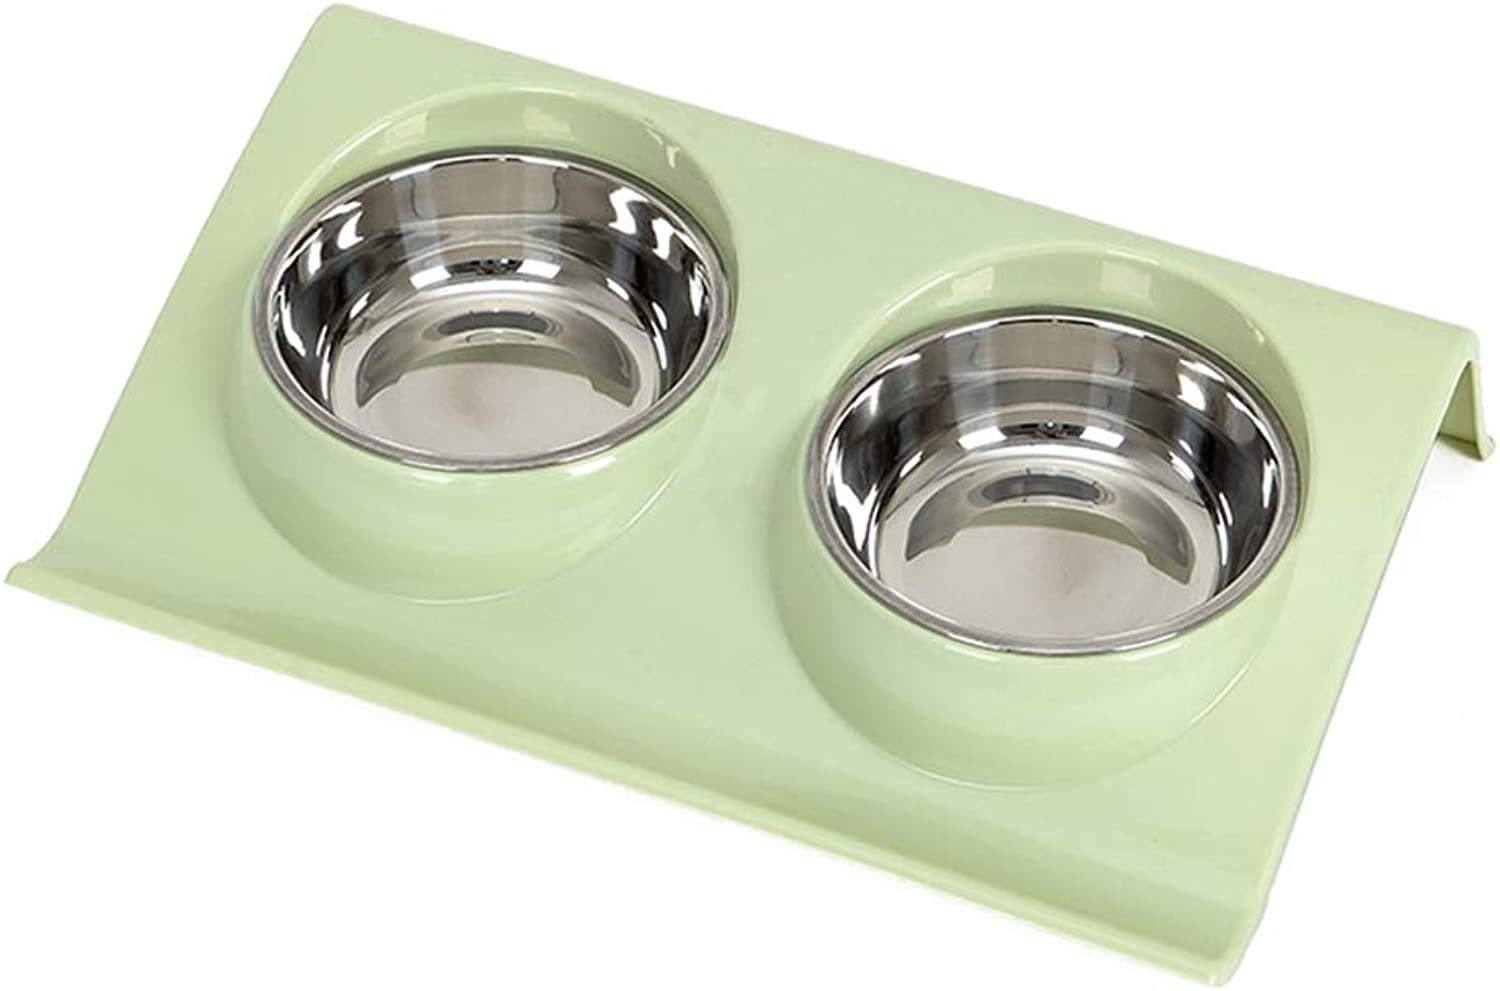 KTYX Dog Bowl Cat Bowl Stainless Steel Double Bowl Pet Bowl (Three colors Optional) Pet Bowl (color   Green, Size   S)